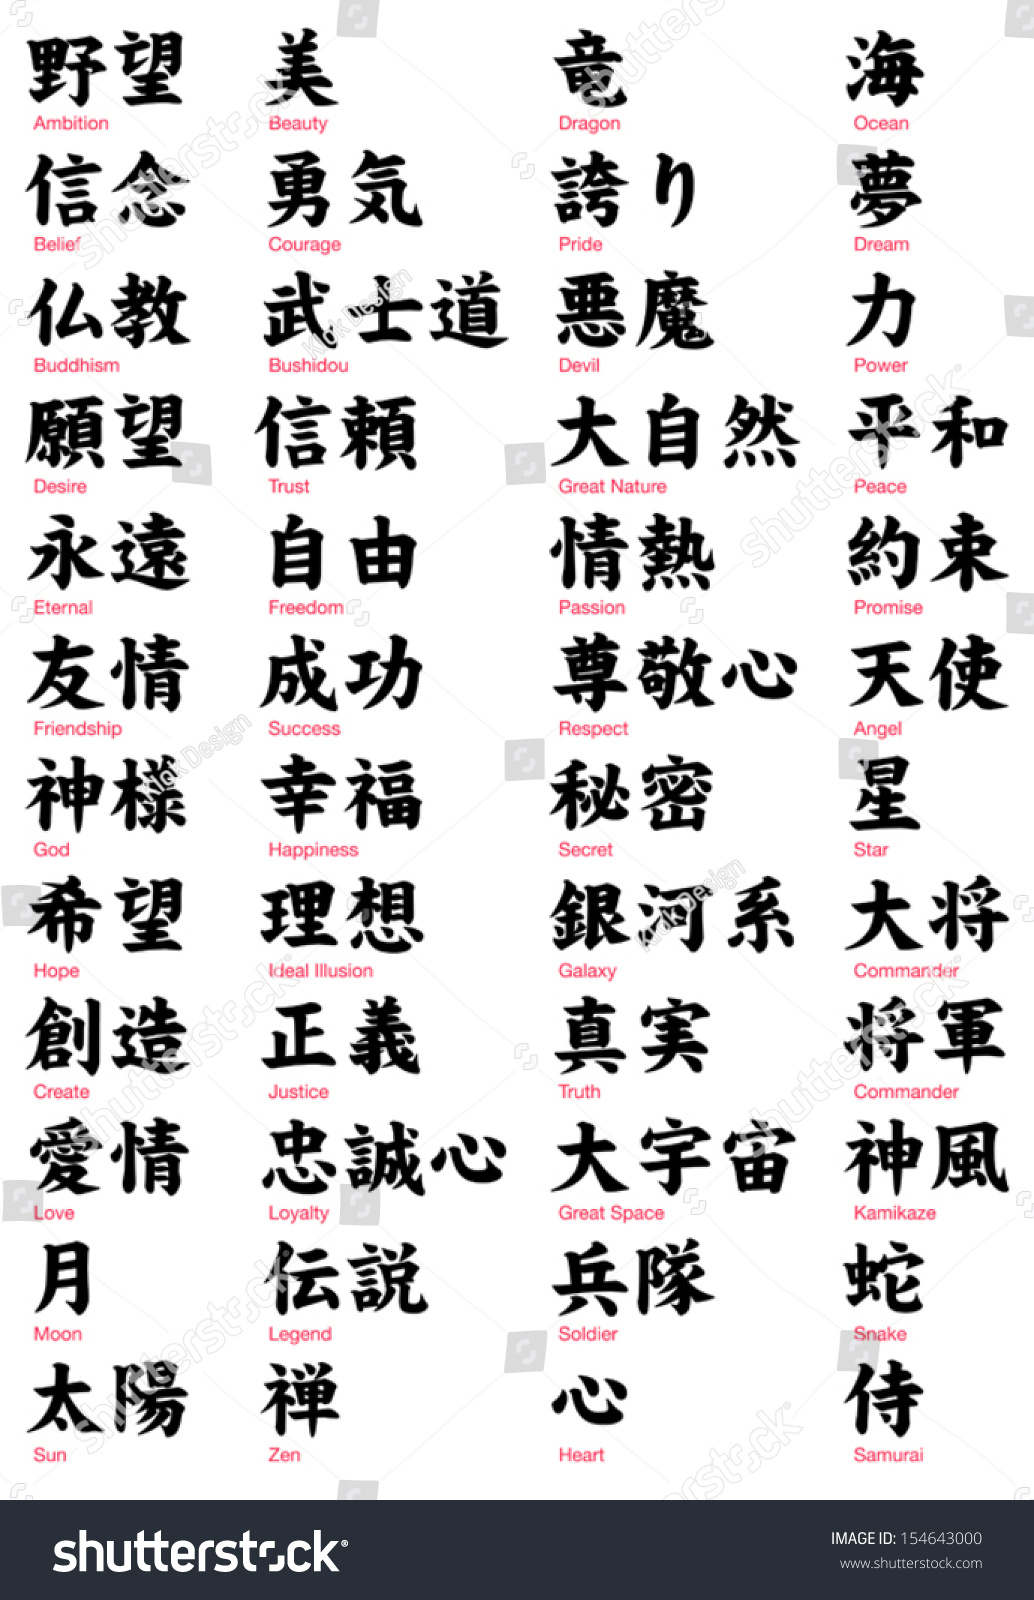 Japanese Kanji vol 2 / serif font Stock Photo 154643000 - Avopix com